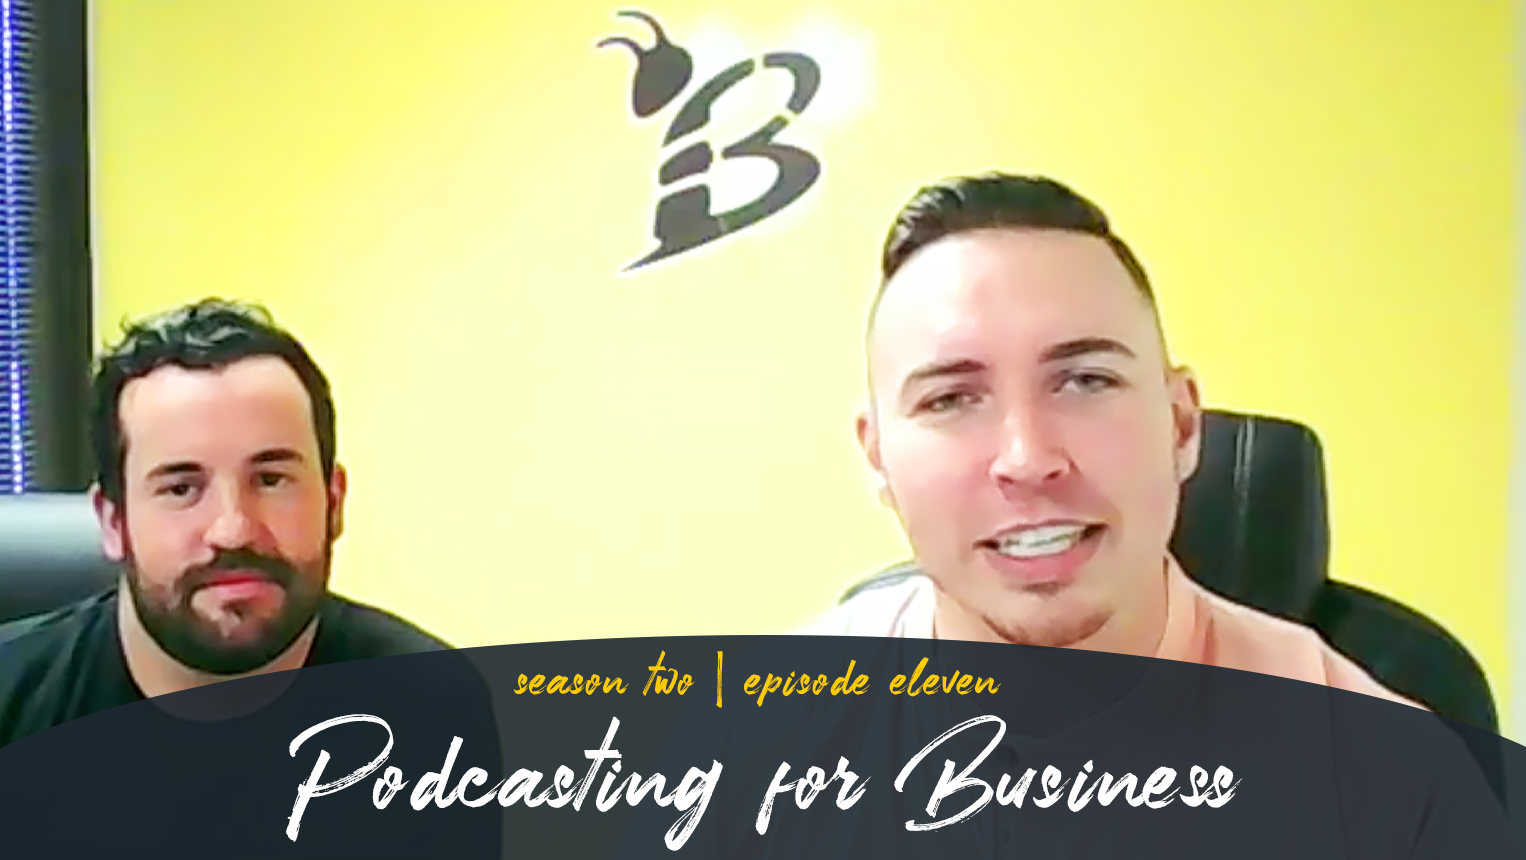 Podcasting for Business with Ben Baker of Your Brand Marketing